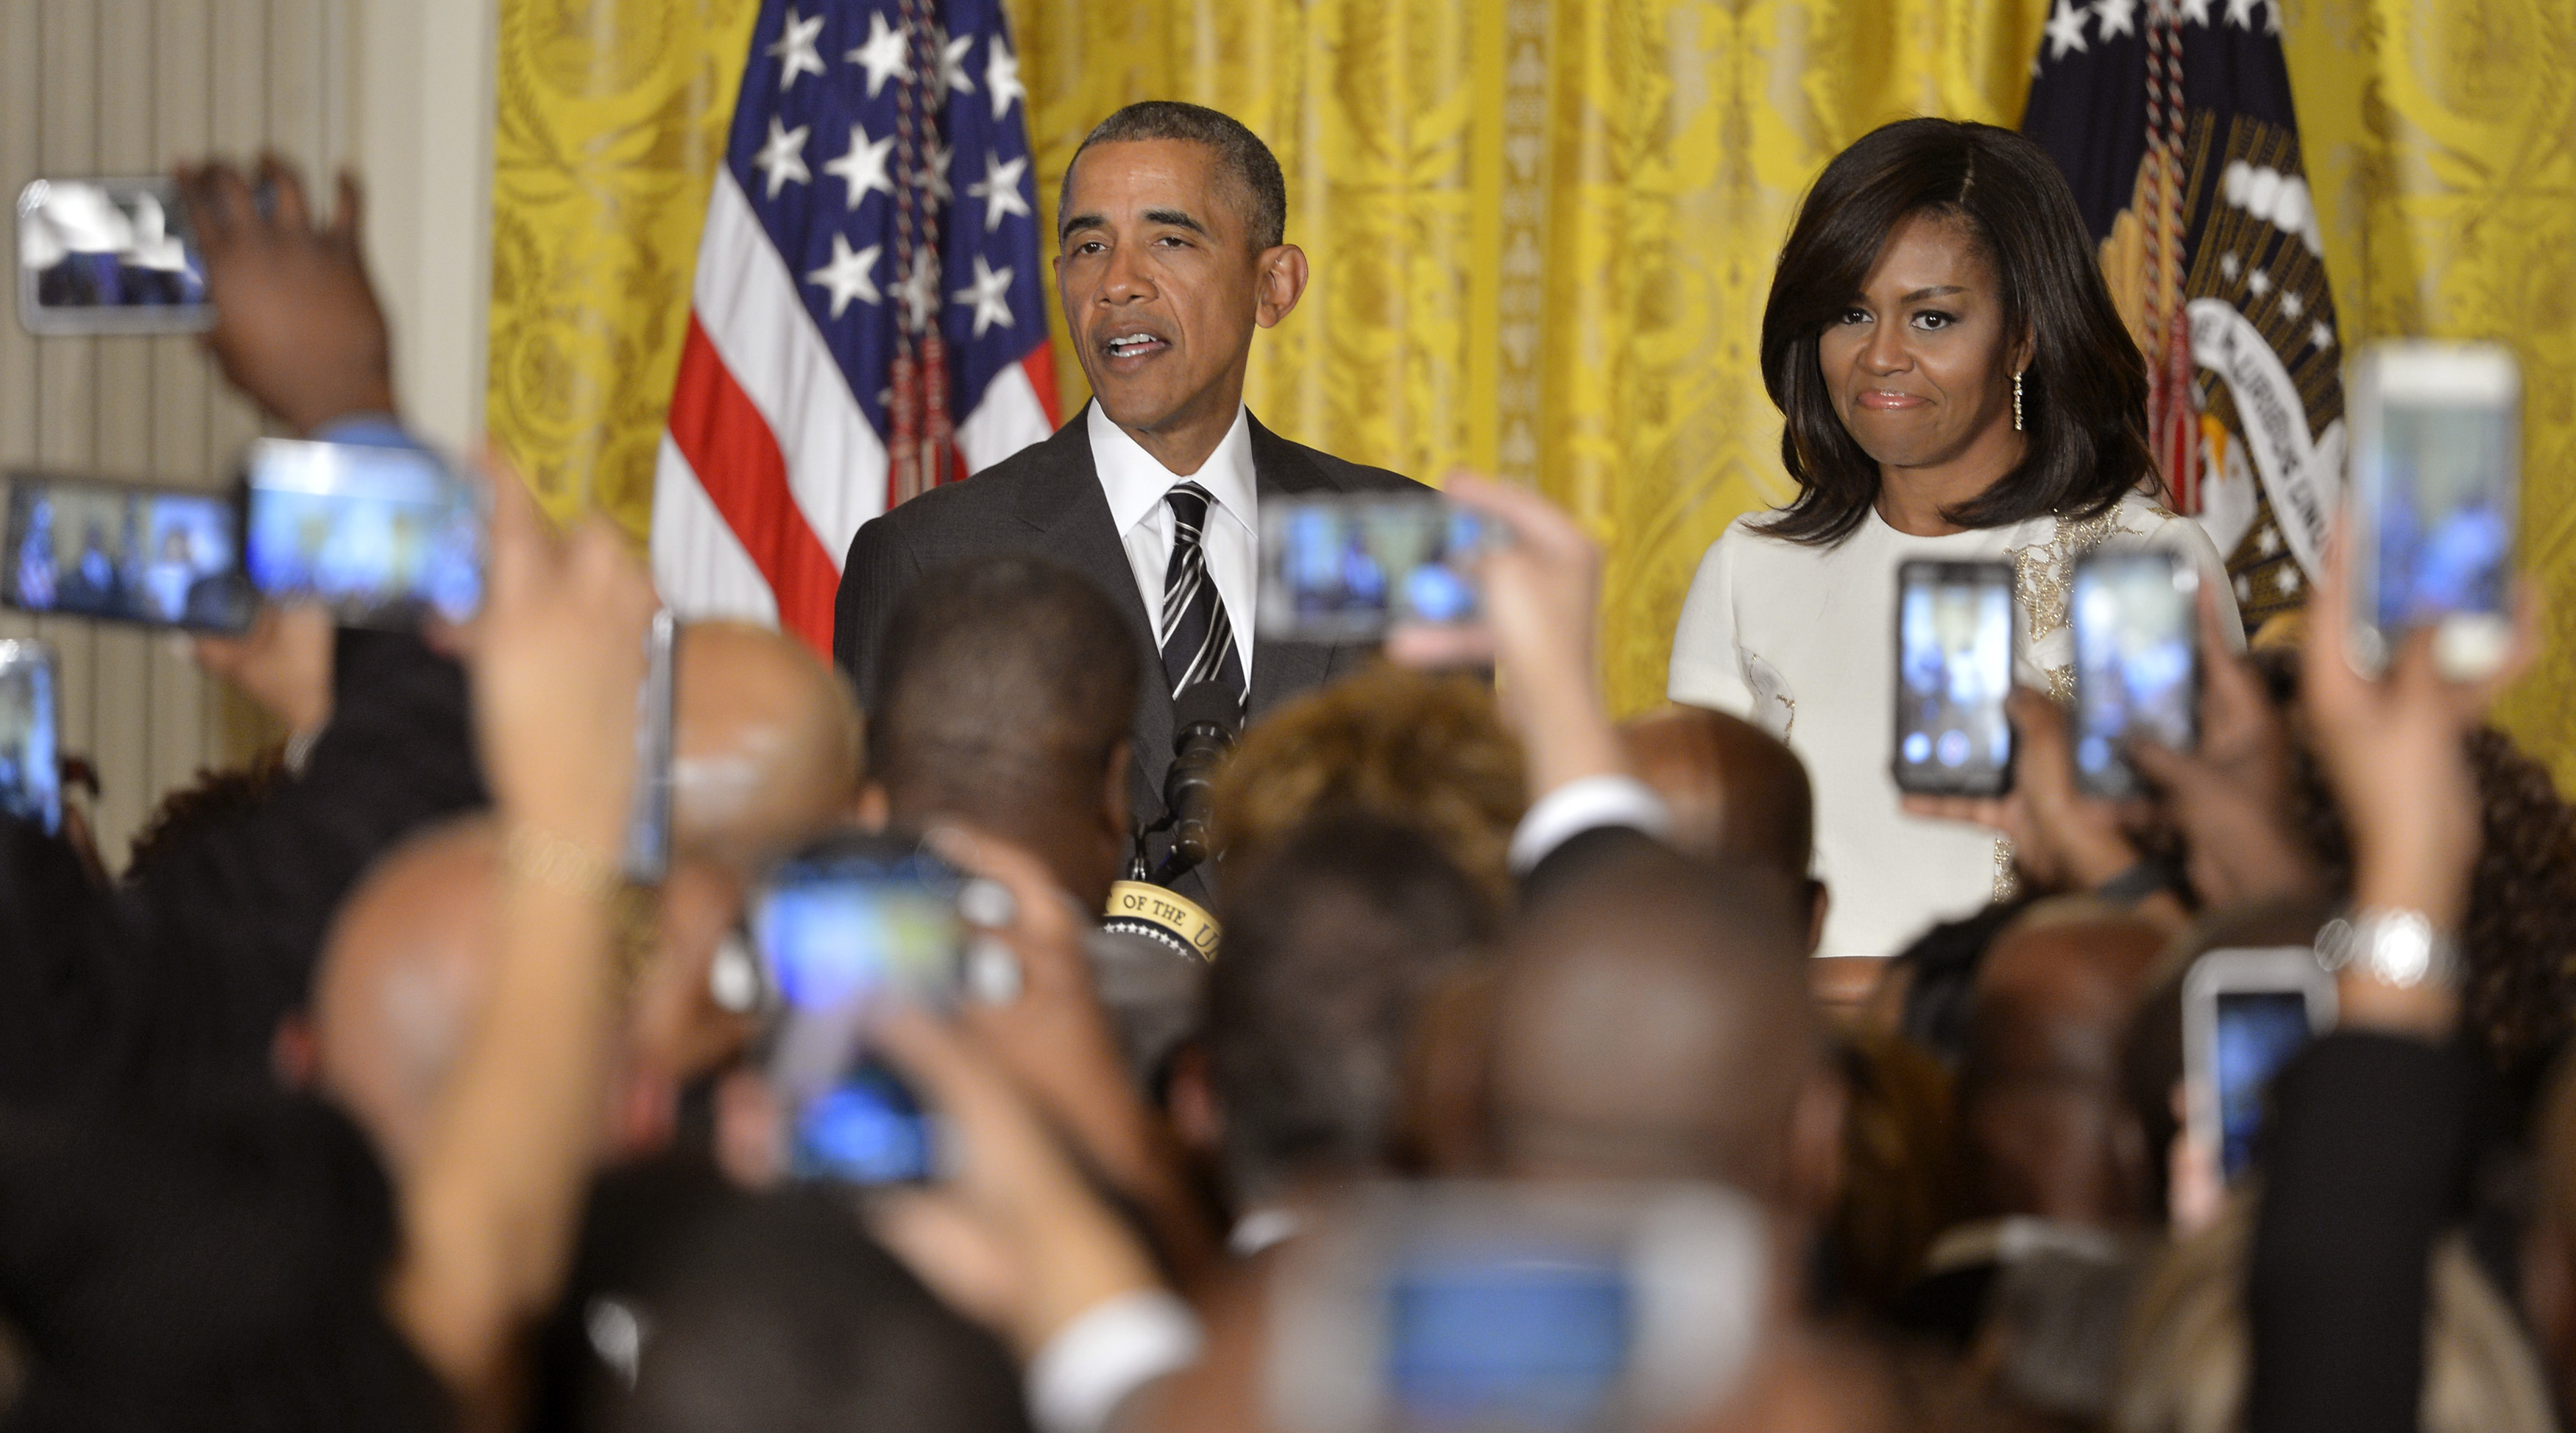 President Obama and First Lady Address Reception For Black History Month